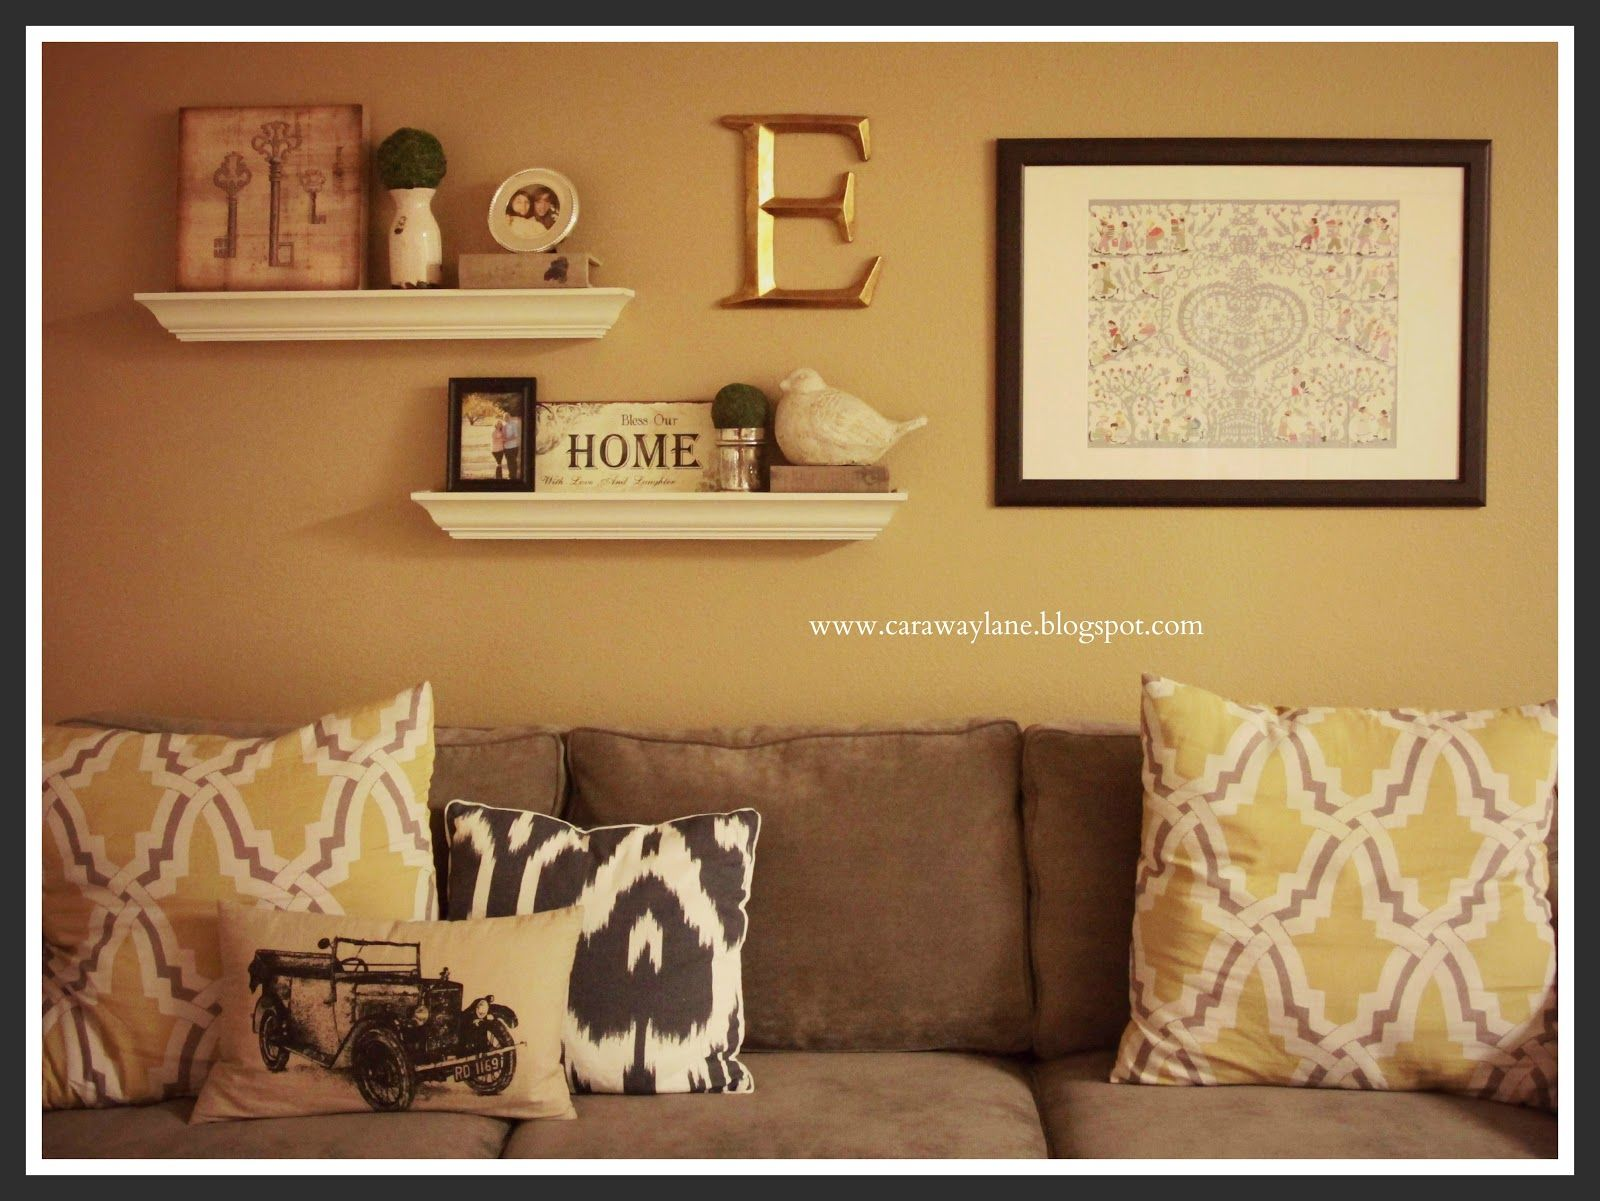 decorate over a sofa | Above the Couch Wall Decor | Home Sweet Home ...